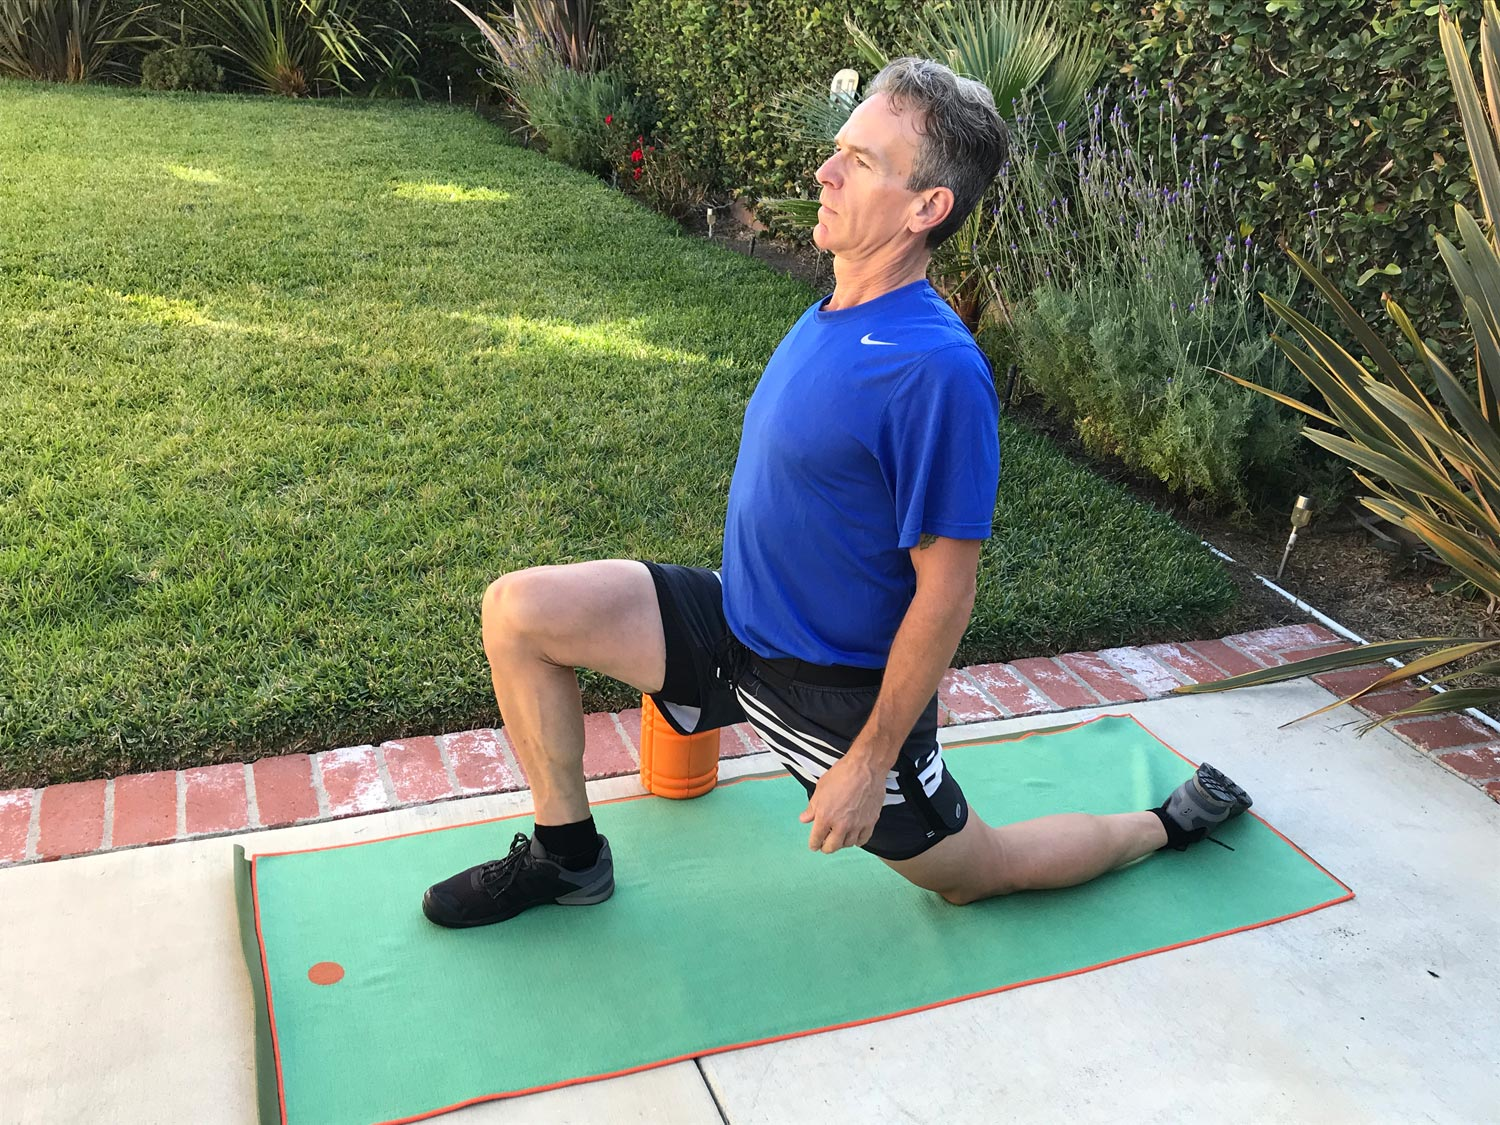 An athlete stretches the hip flexors with one knee kneeling and one on the floor while leaning forward into the stretch.